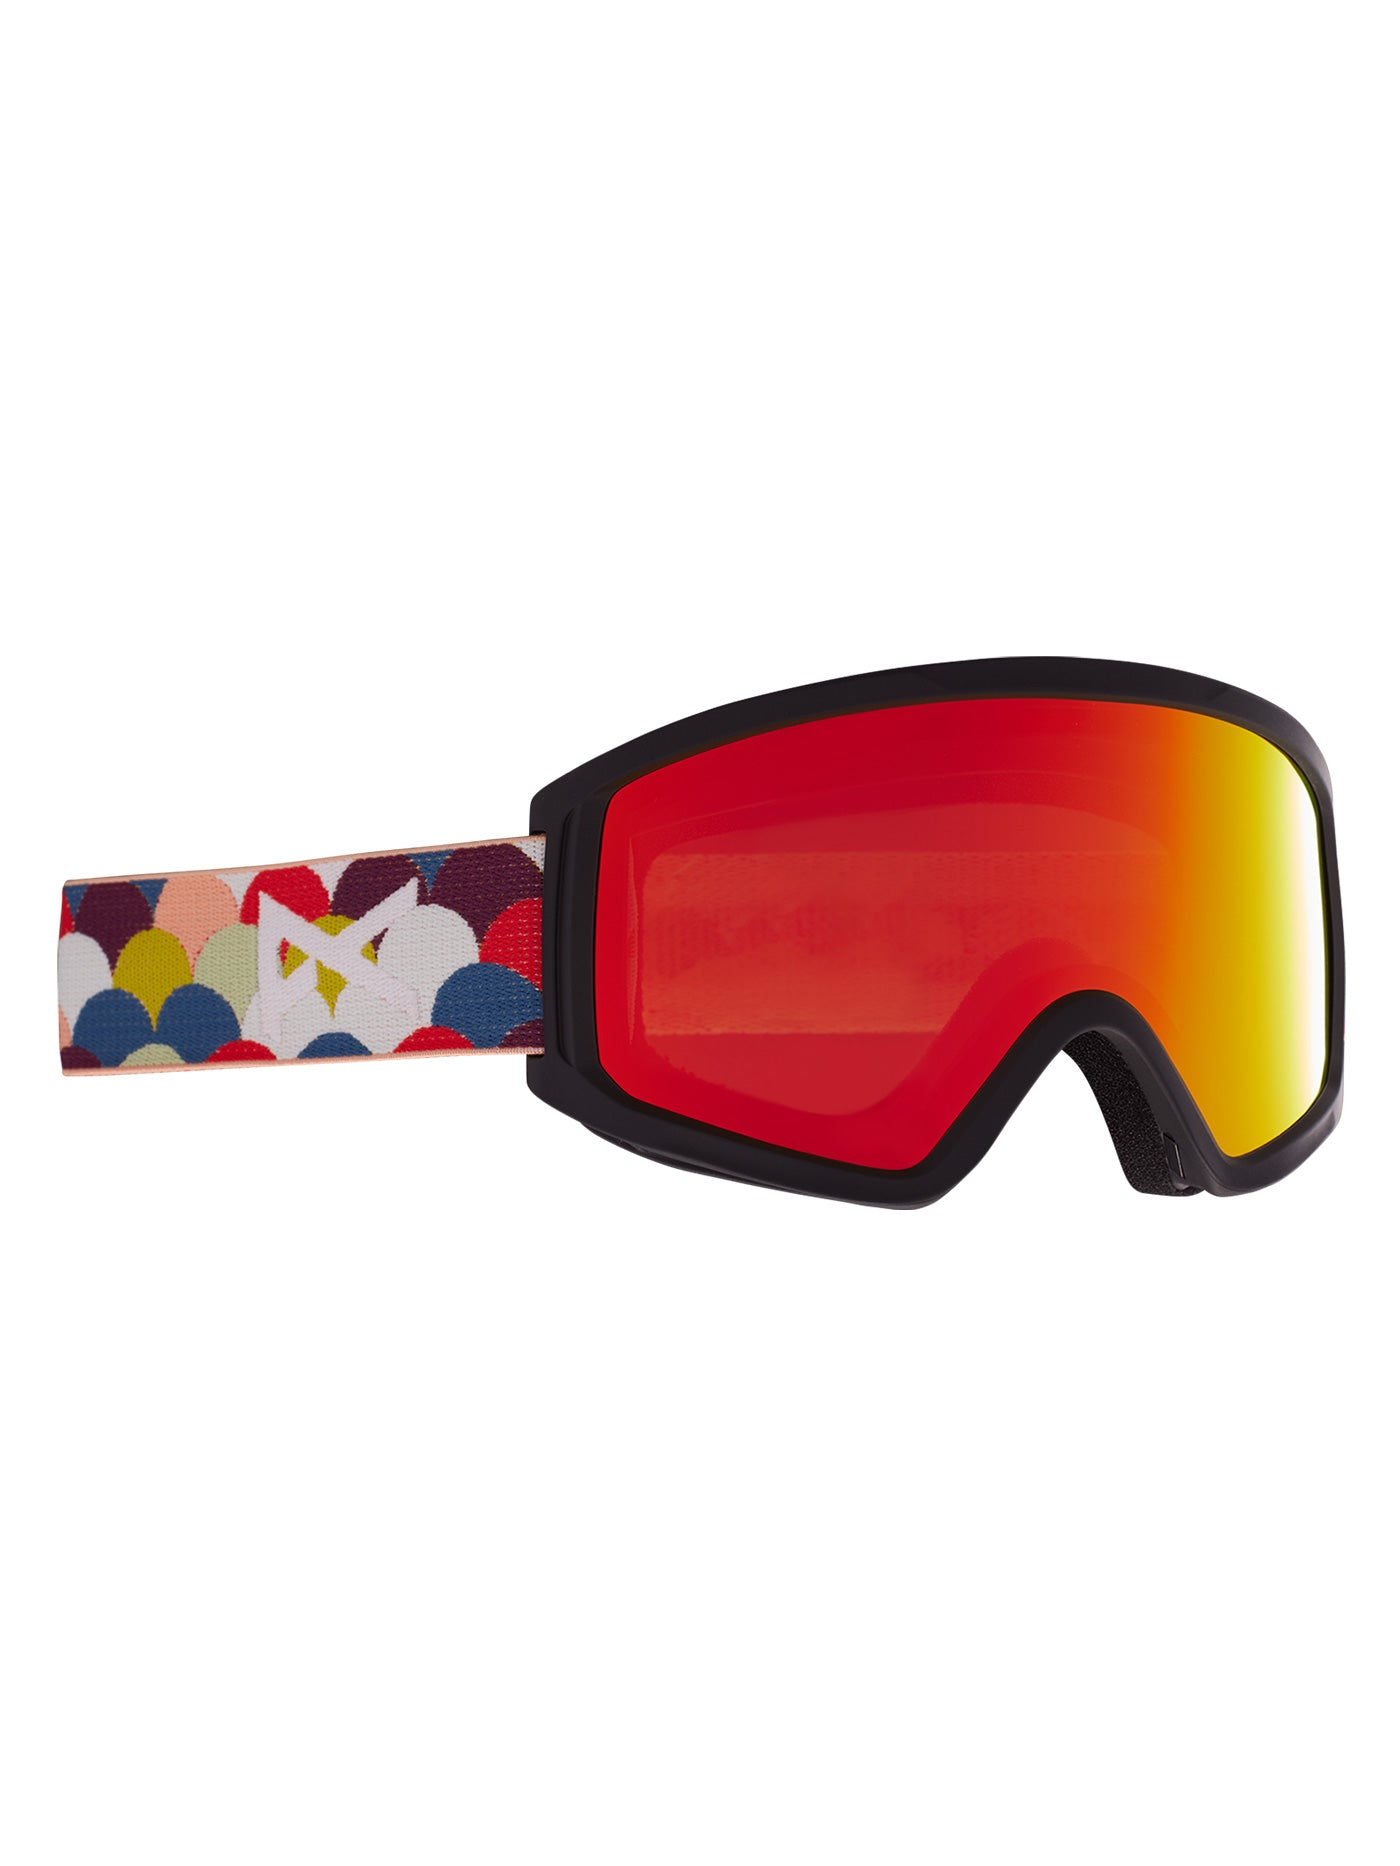 RAINBOW BLK/RED SOL (960)